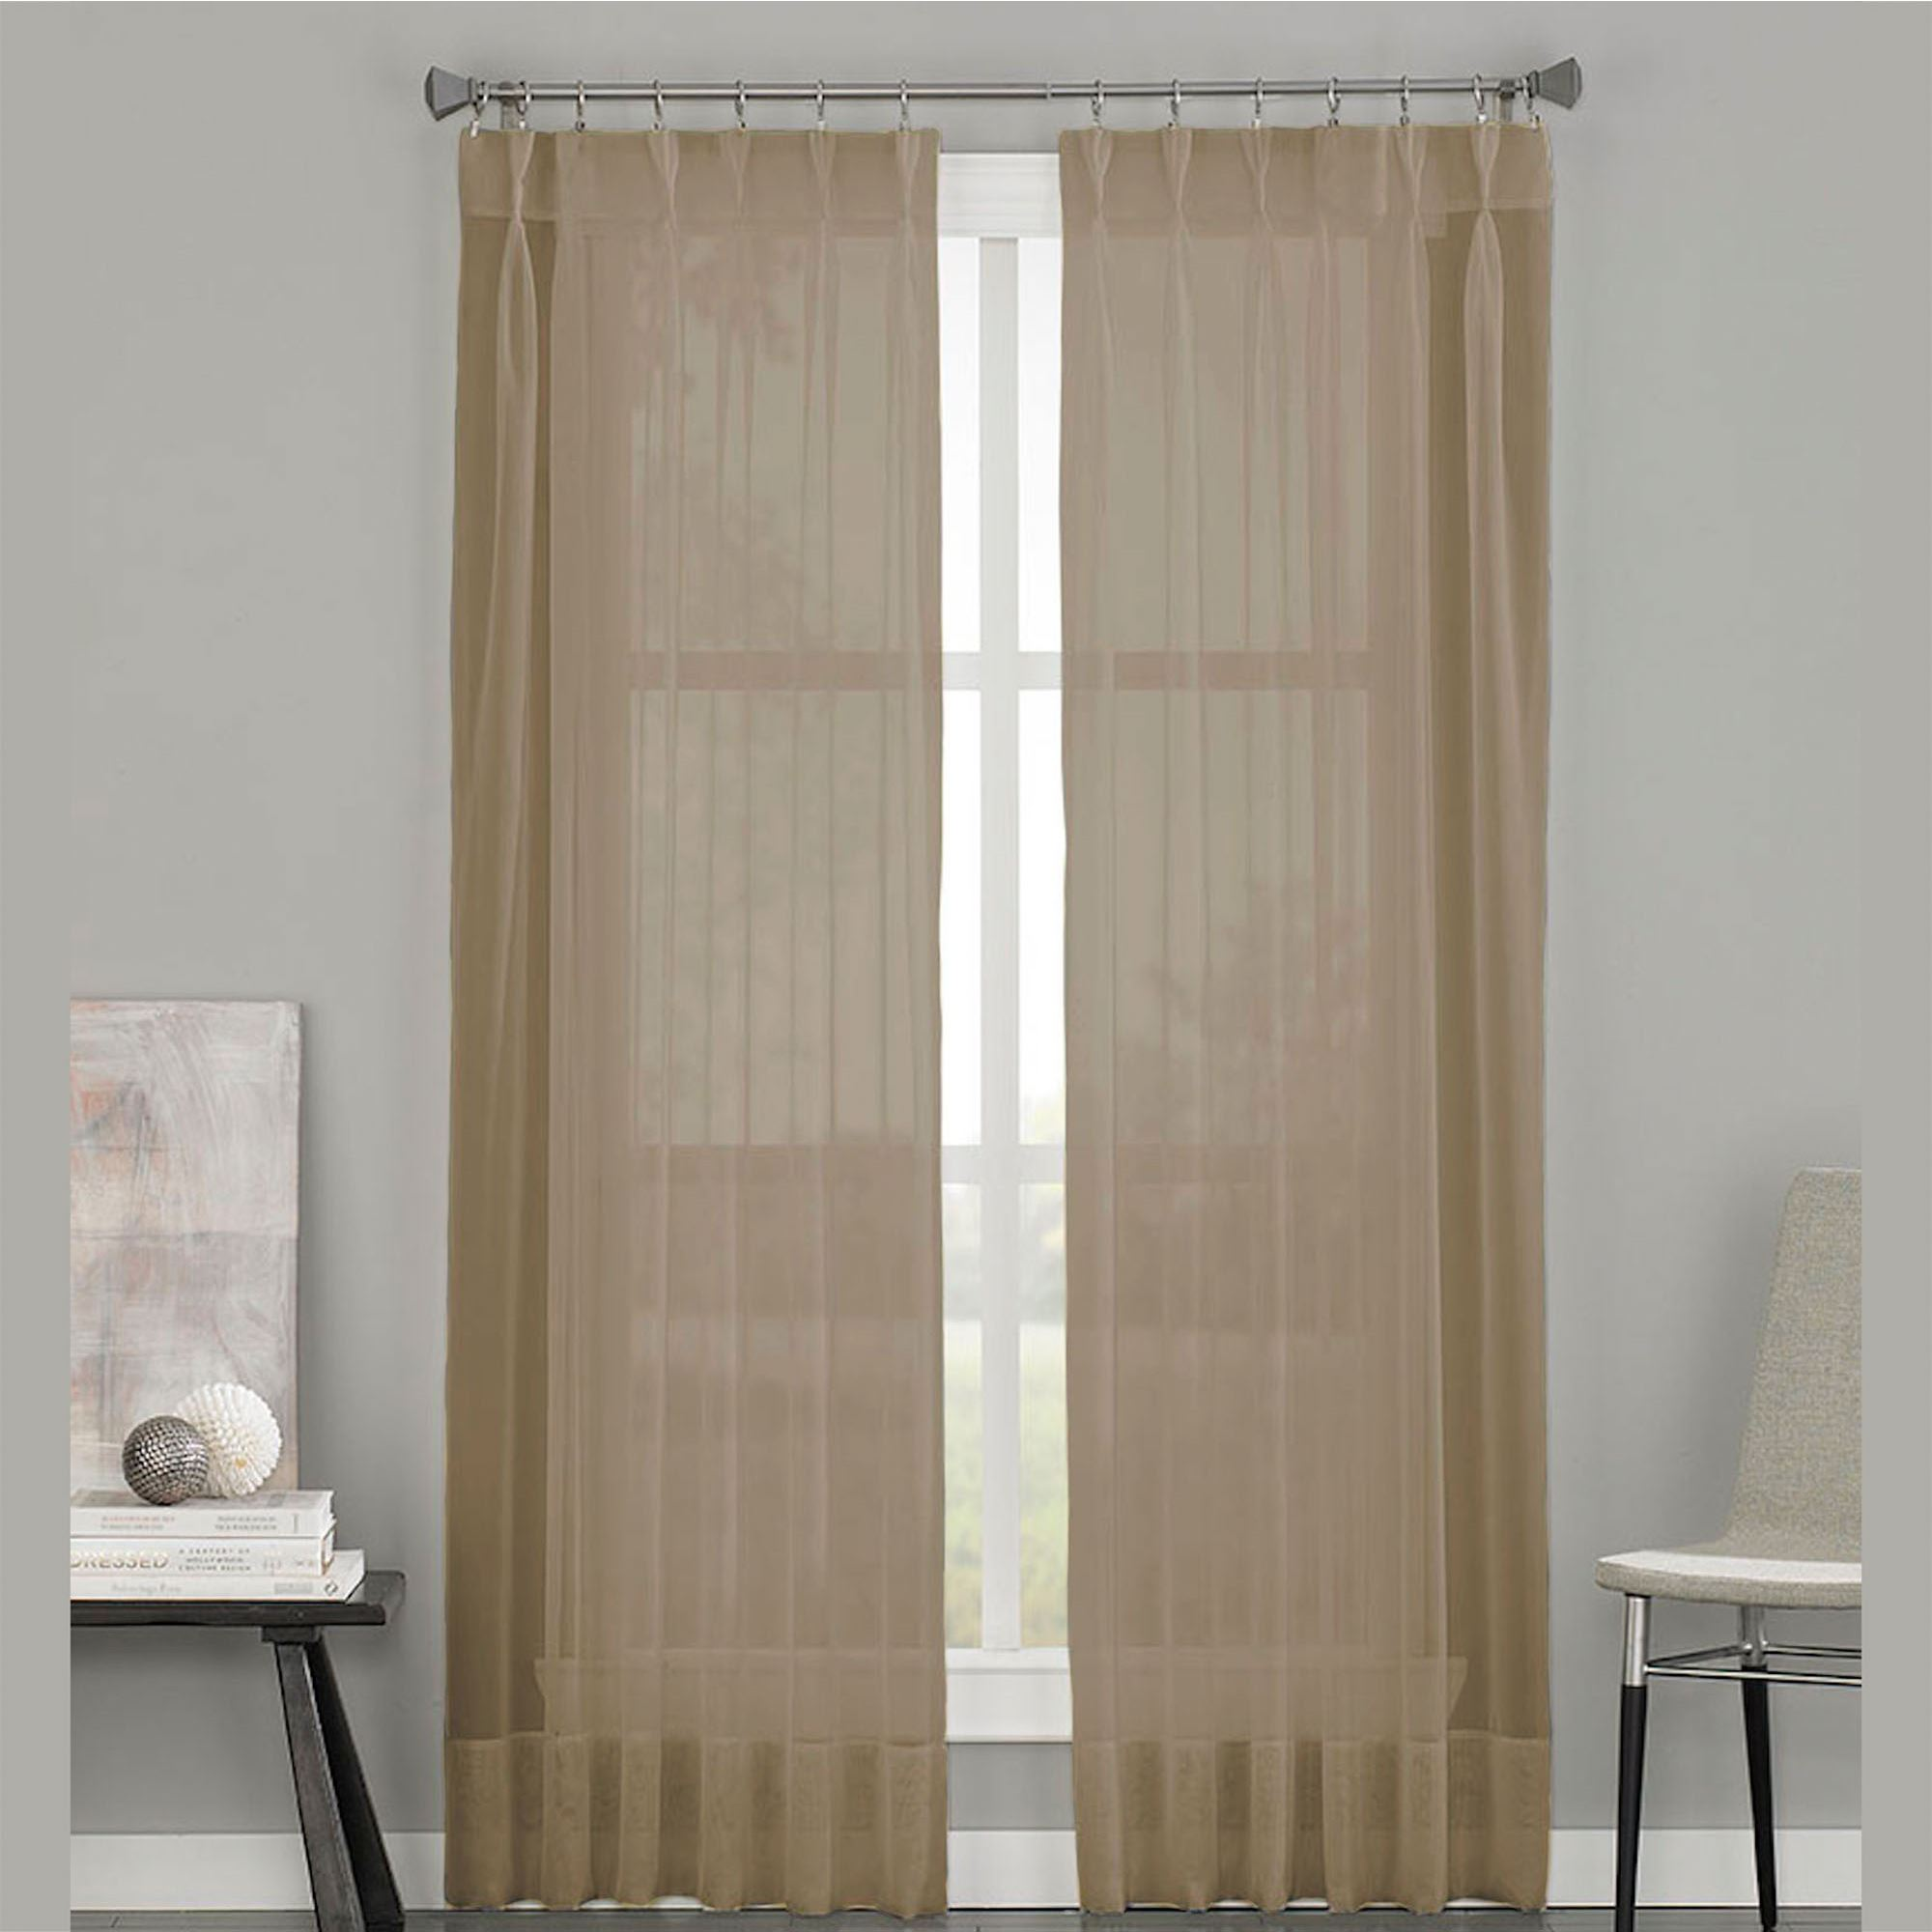 Soho Sheer Voile Pinch Pleat Curtain Panels